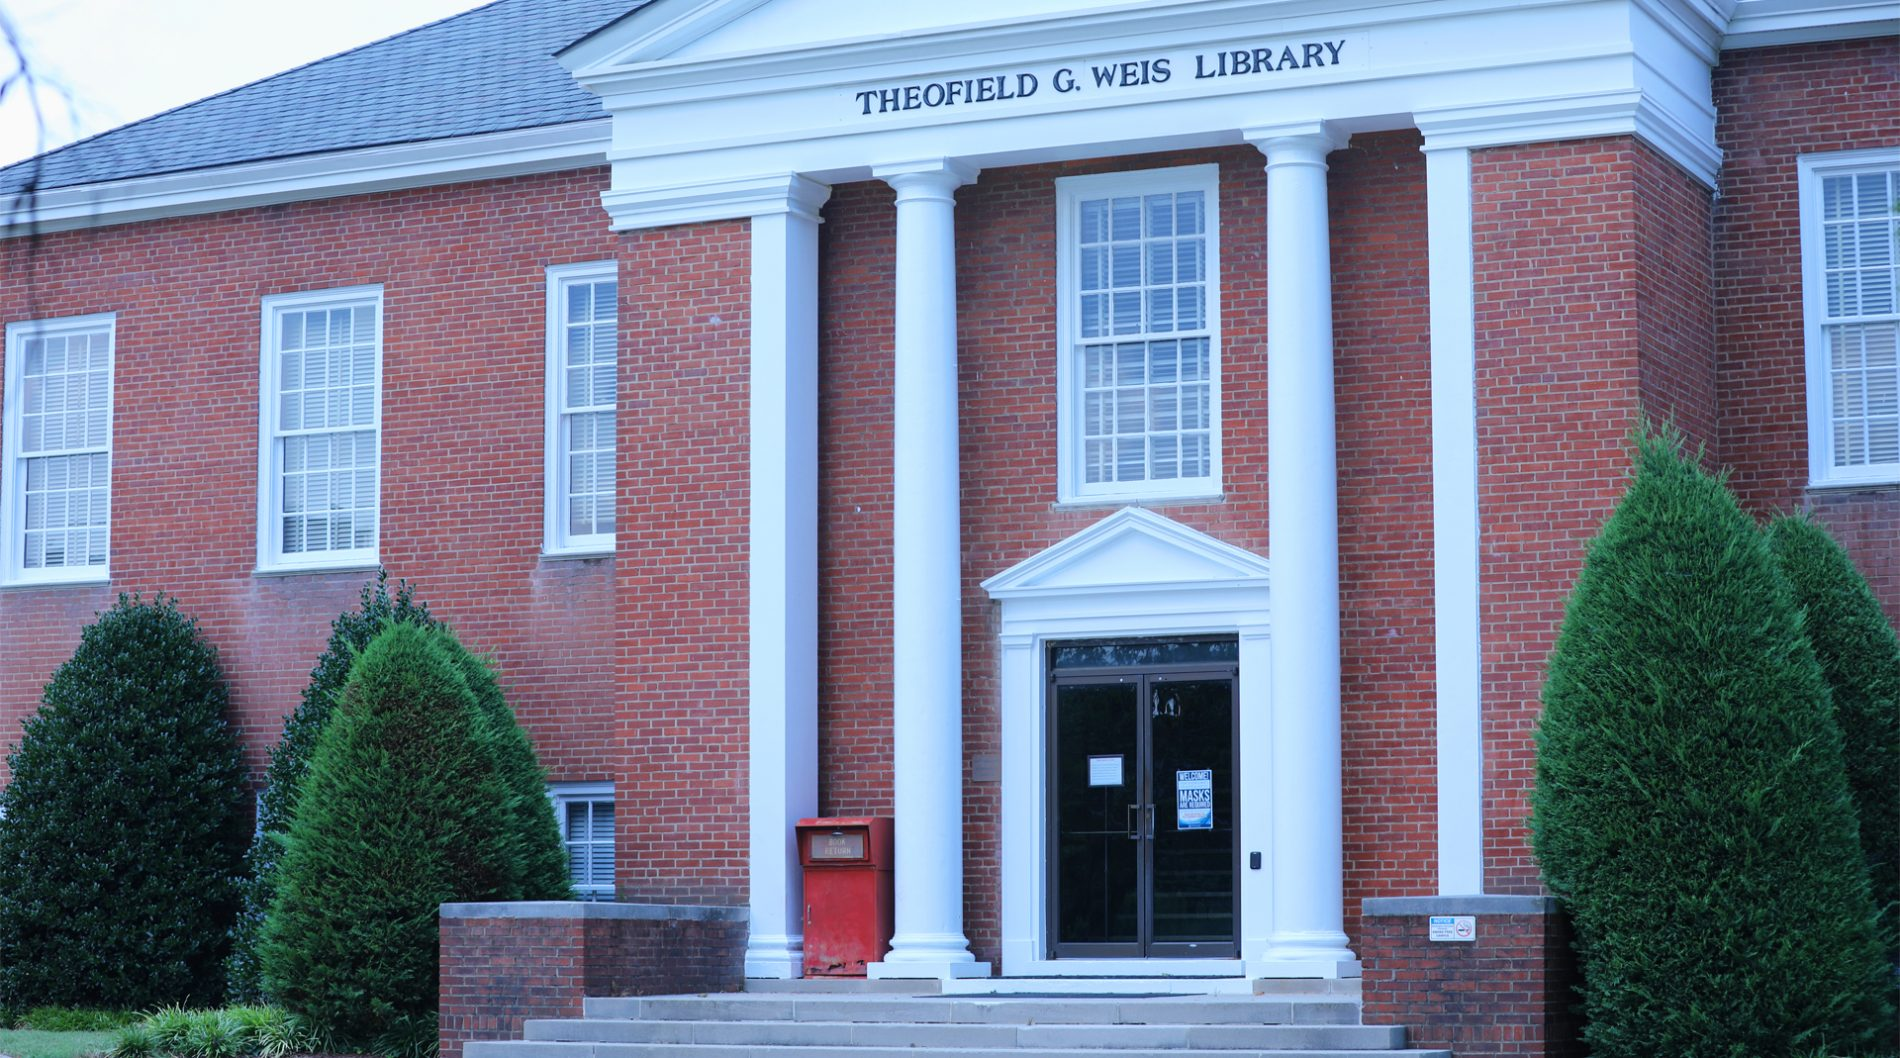 30K Awarded to Theofield G. Weis Library